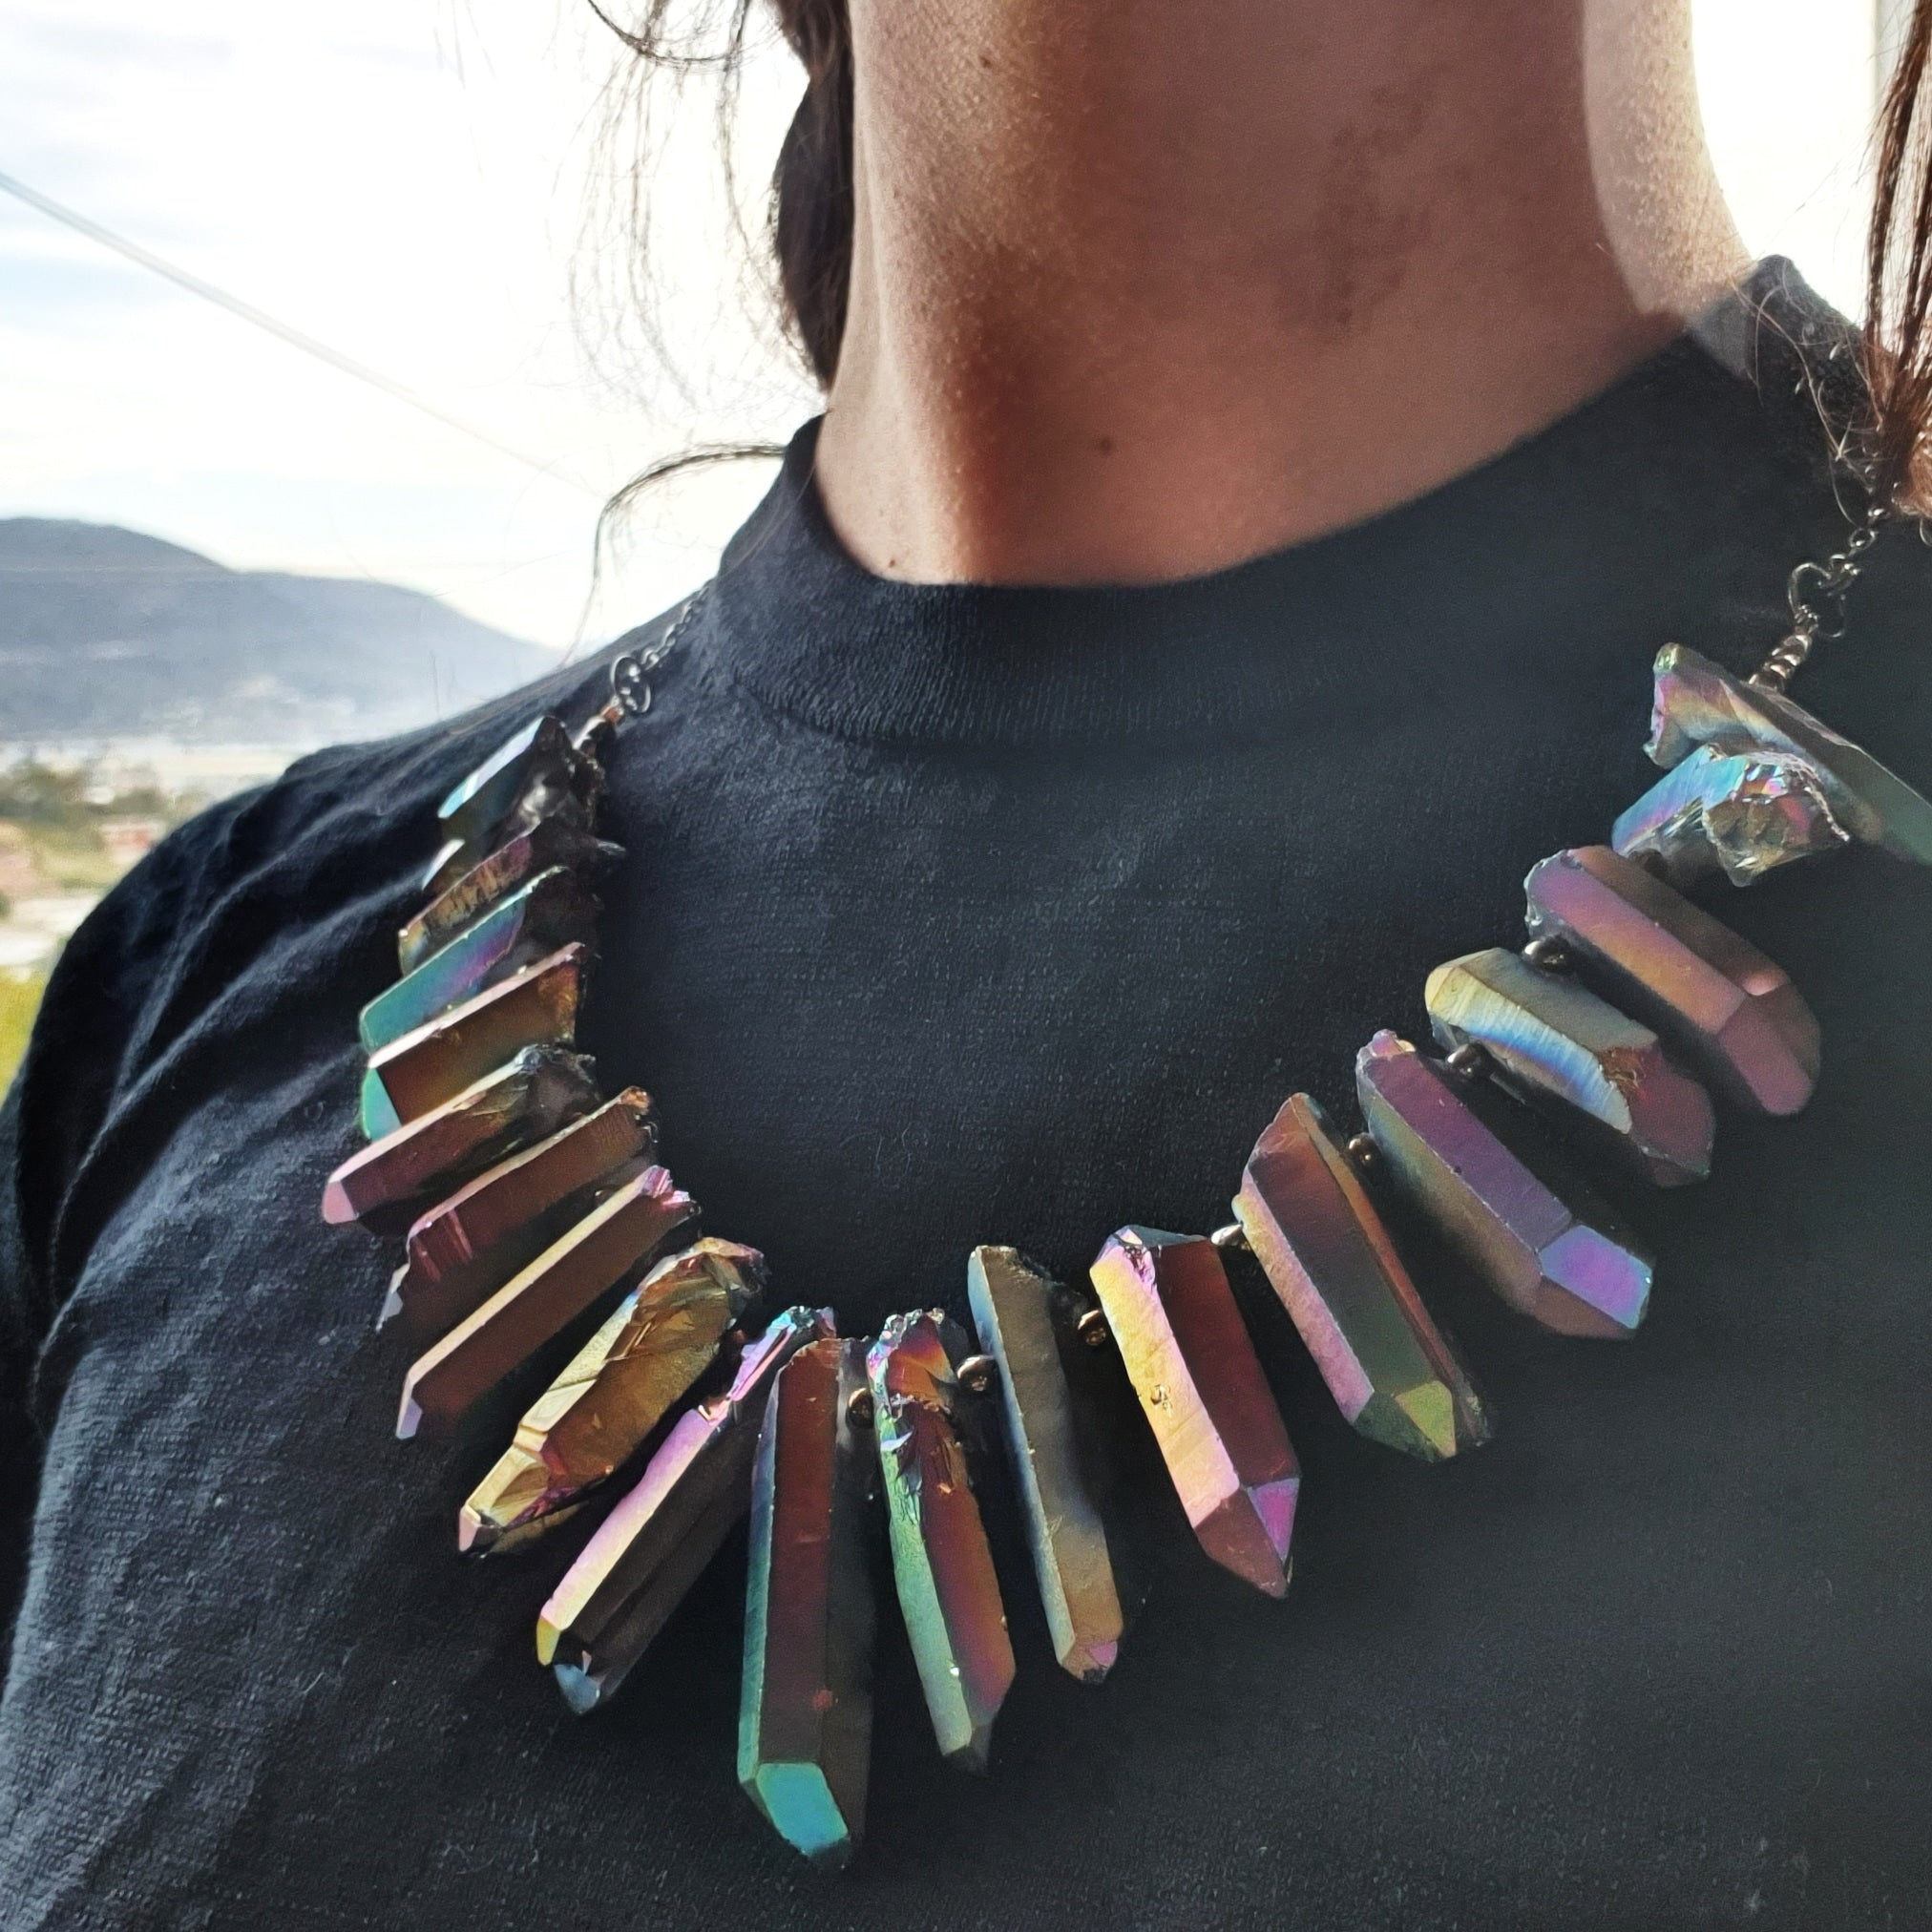 Emily Eliza Arlotte Handcrafted Fine Jewellery - Handmade Australian Tasmanian Jewelry Rainbow Quartz Electroplated Titanium Sterling Silver Neckpiece Necklace Contemporary Chunky Statement Unique Trendy Modern Necklace Boho Bohemian Gypsy Witchy Style Festival Fashion